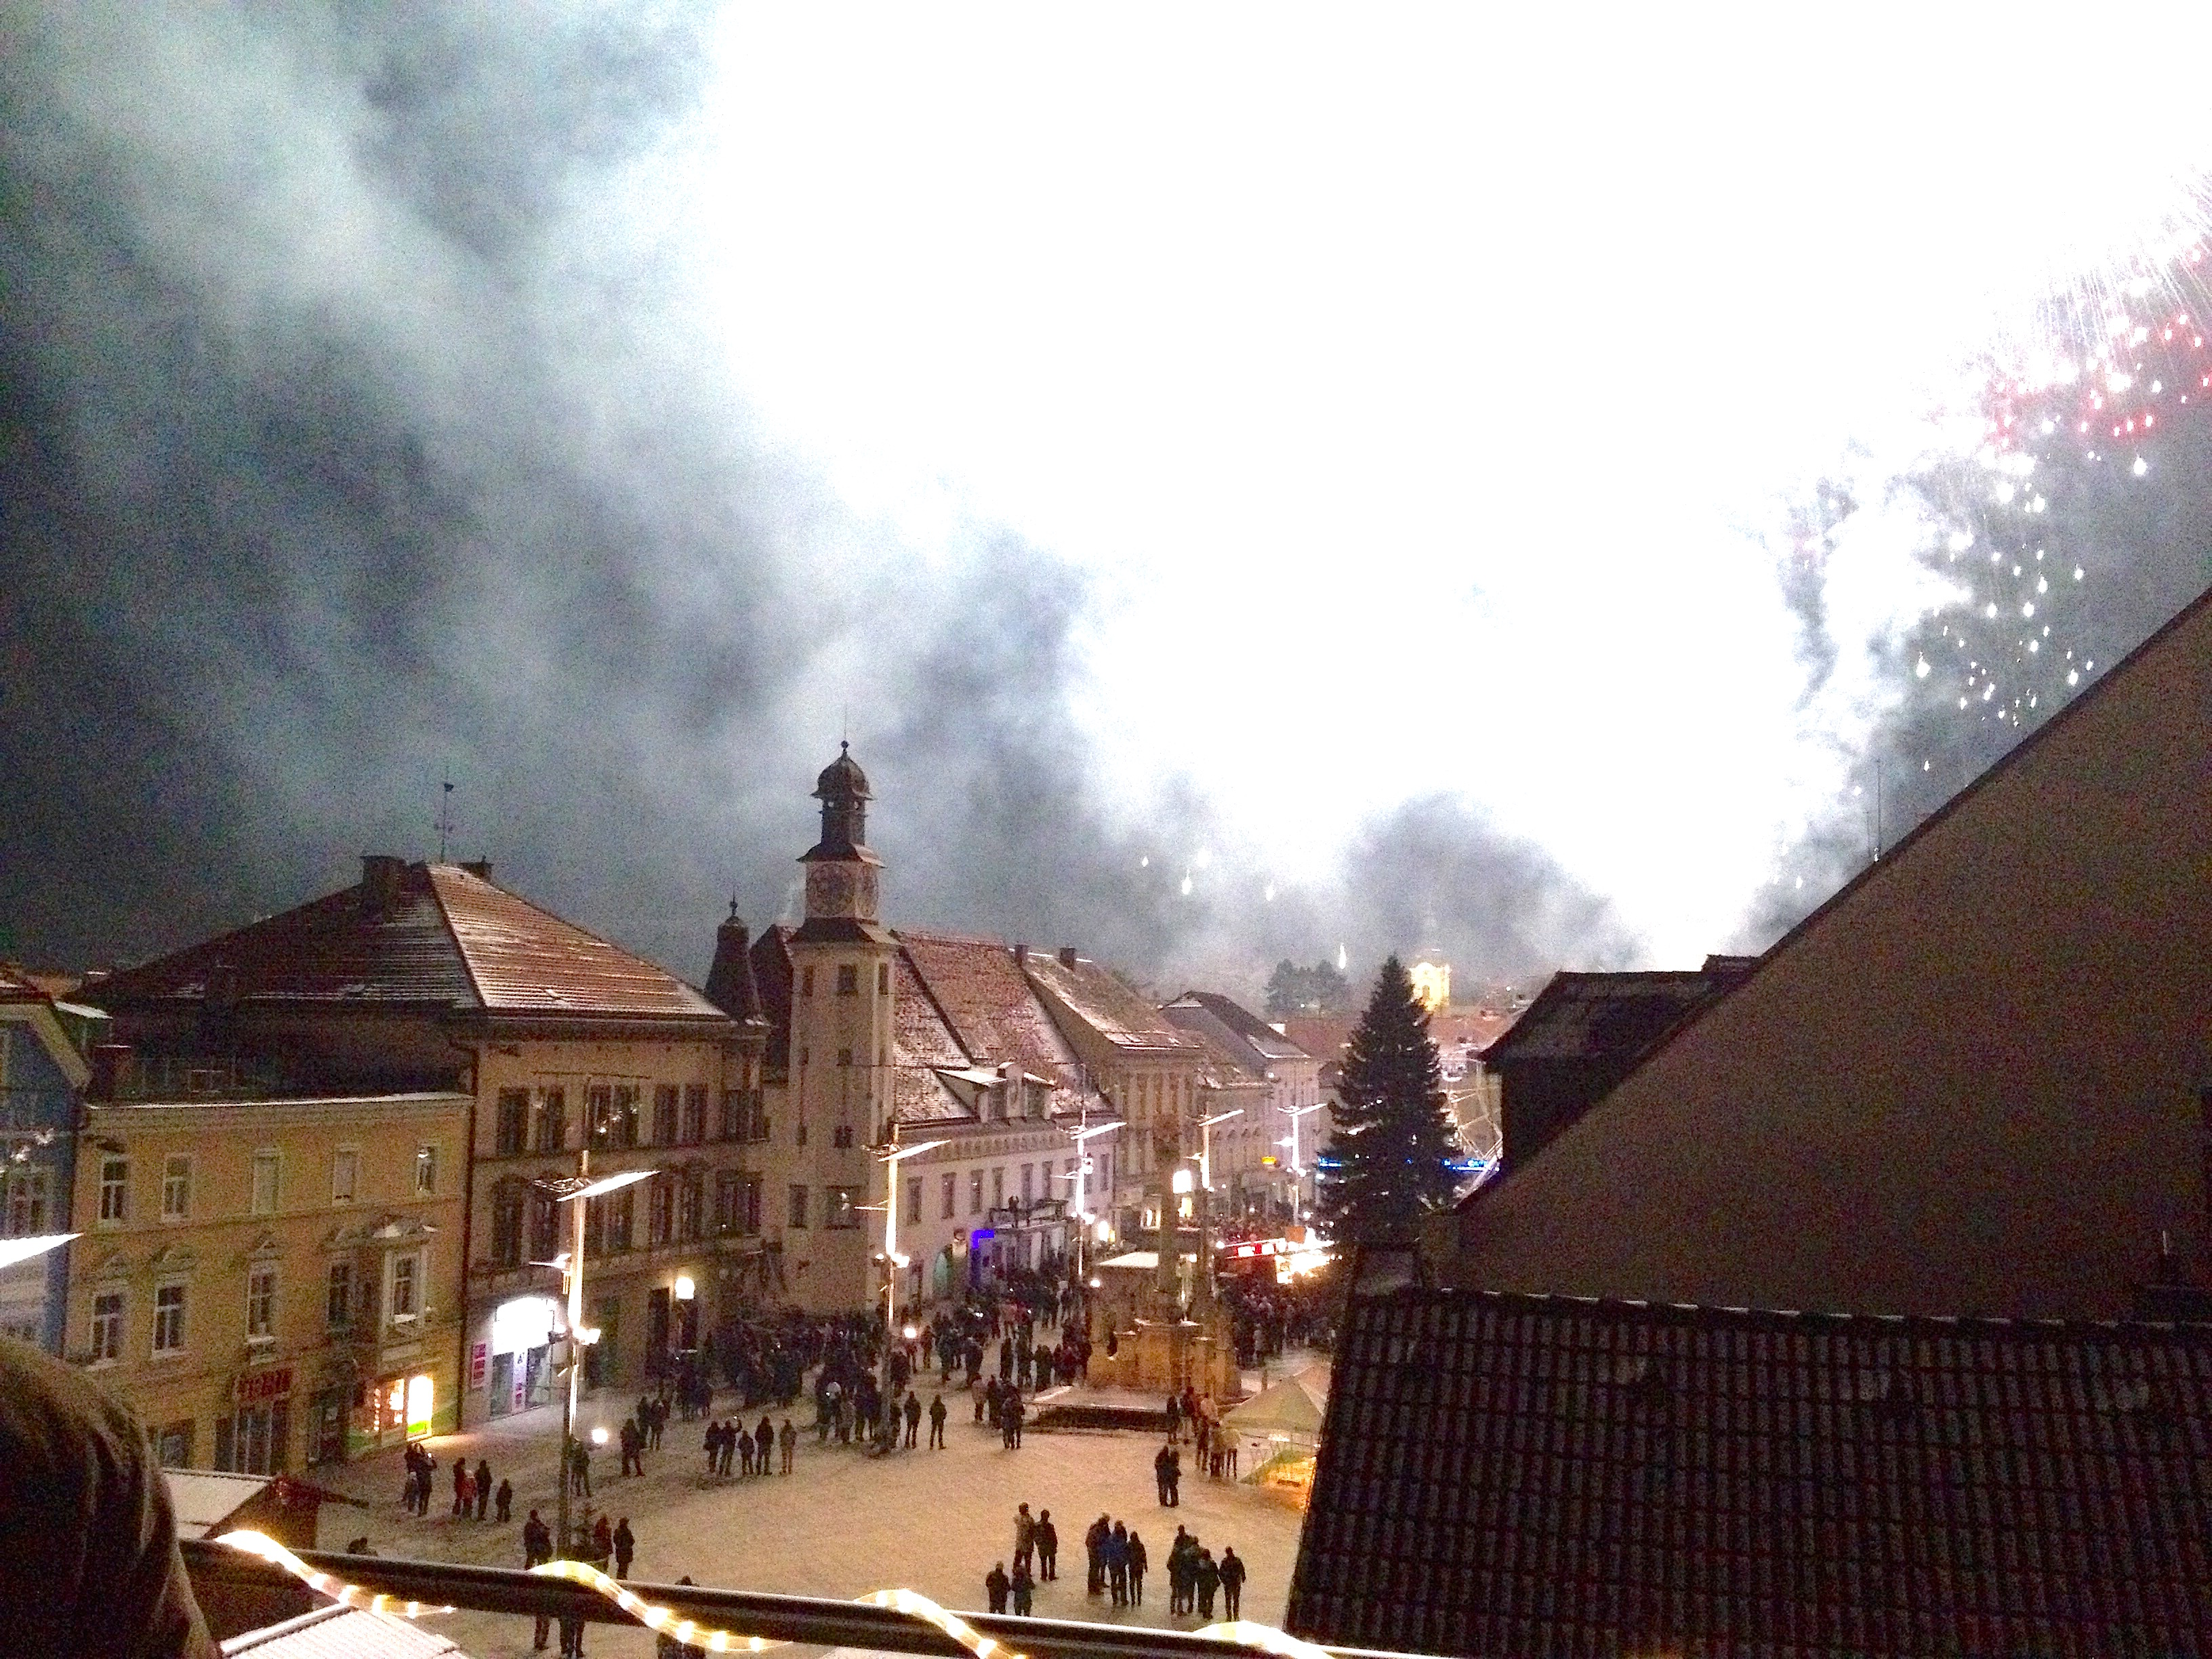 First moments of 2015 in Leoben, Austria